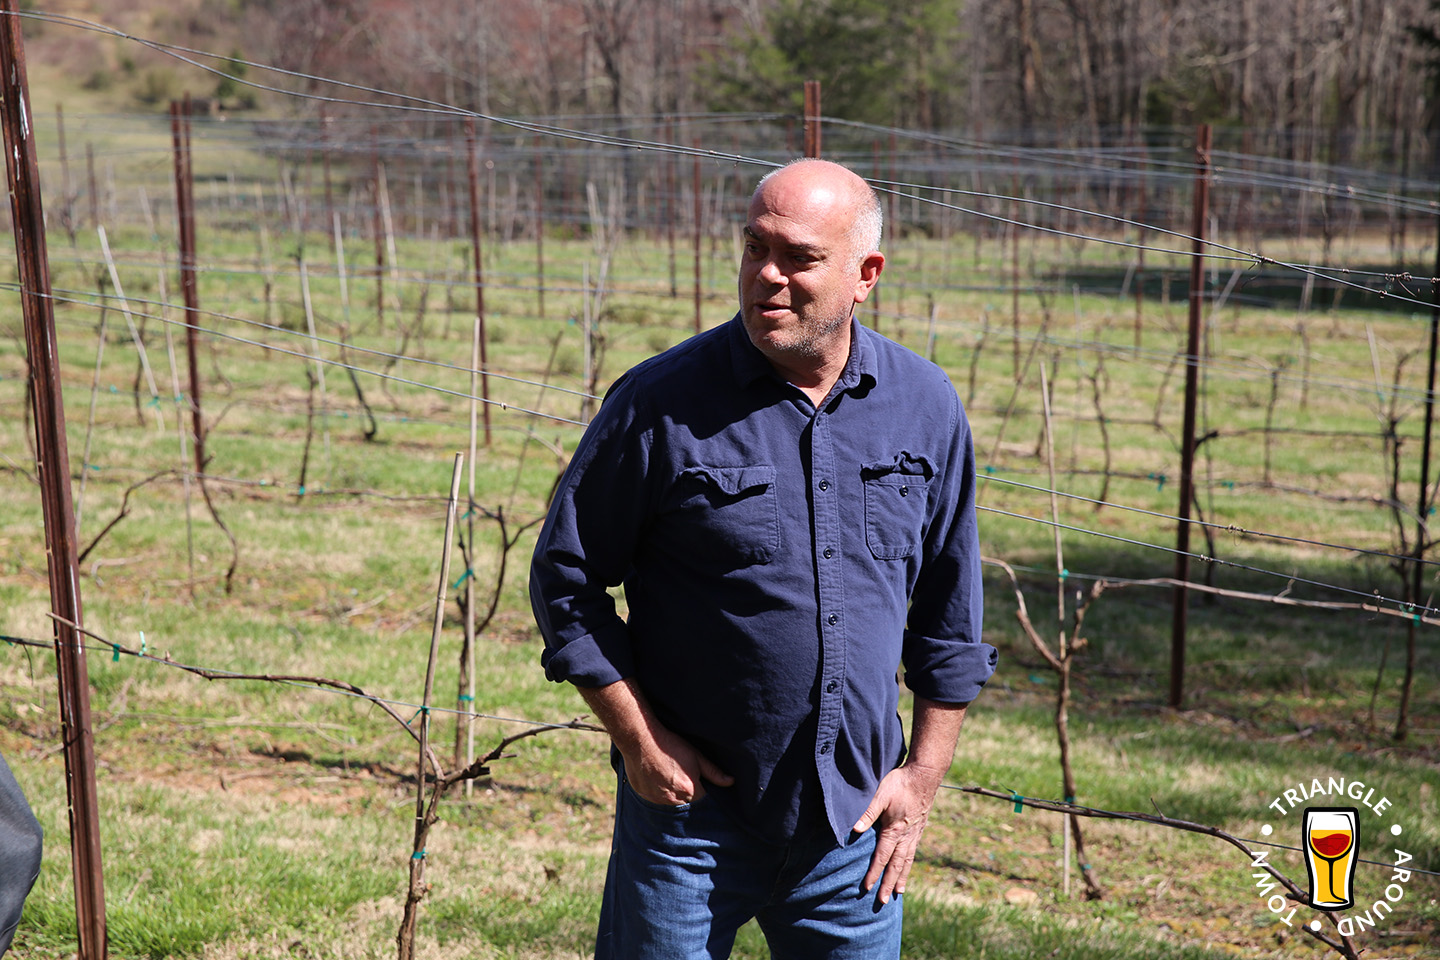 Sean McRitchie is co-owner and winemaker at McRitchie Winery & Ciderworks.